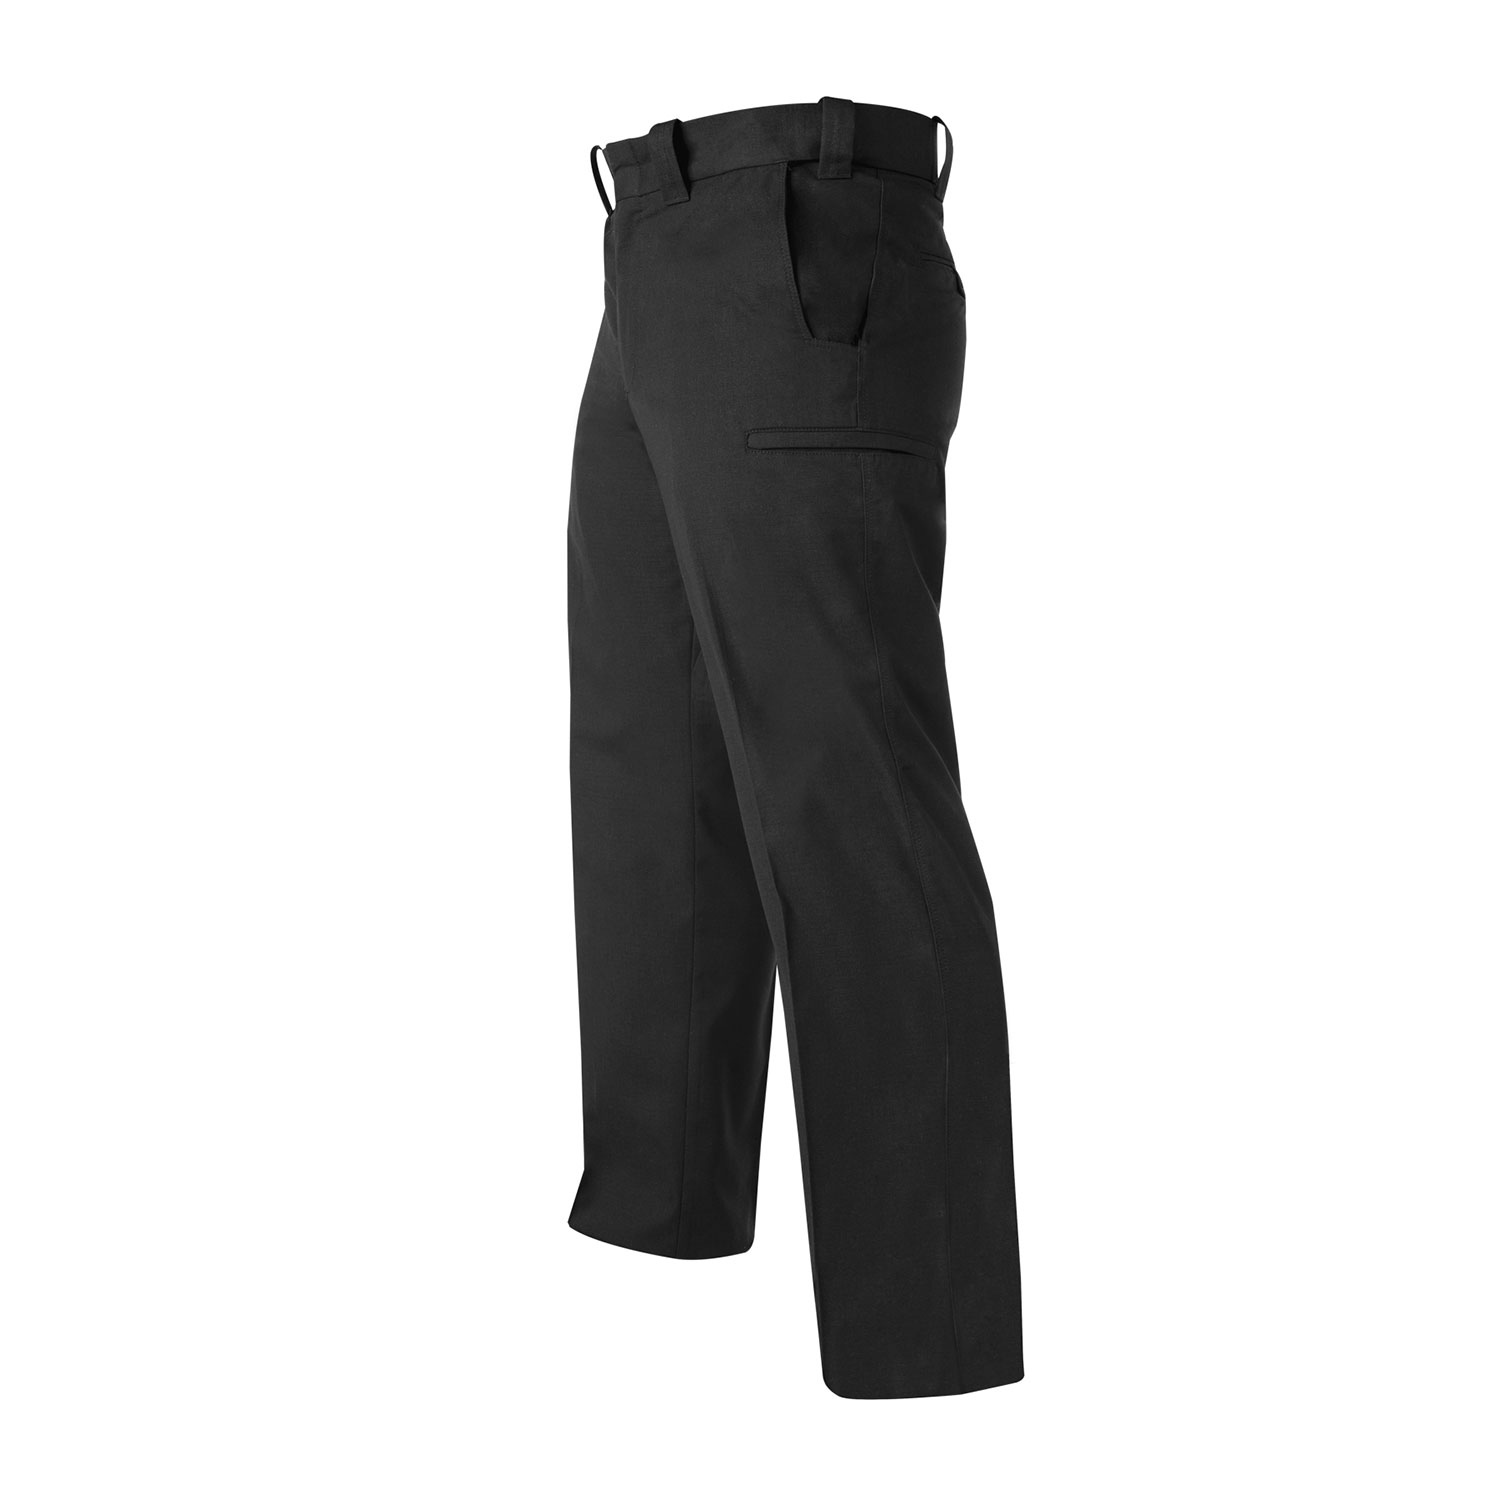 Cross Fx Class A Style Uniform Pants by Flying Cross